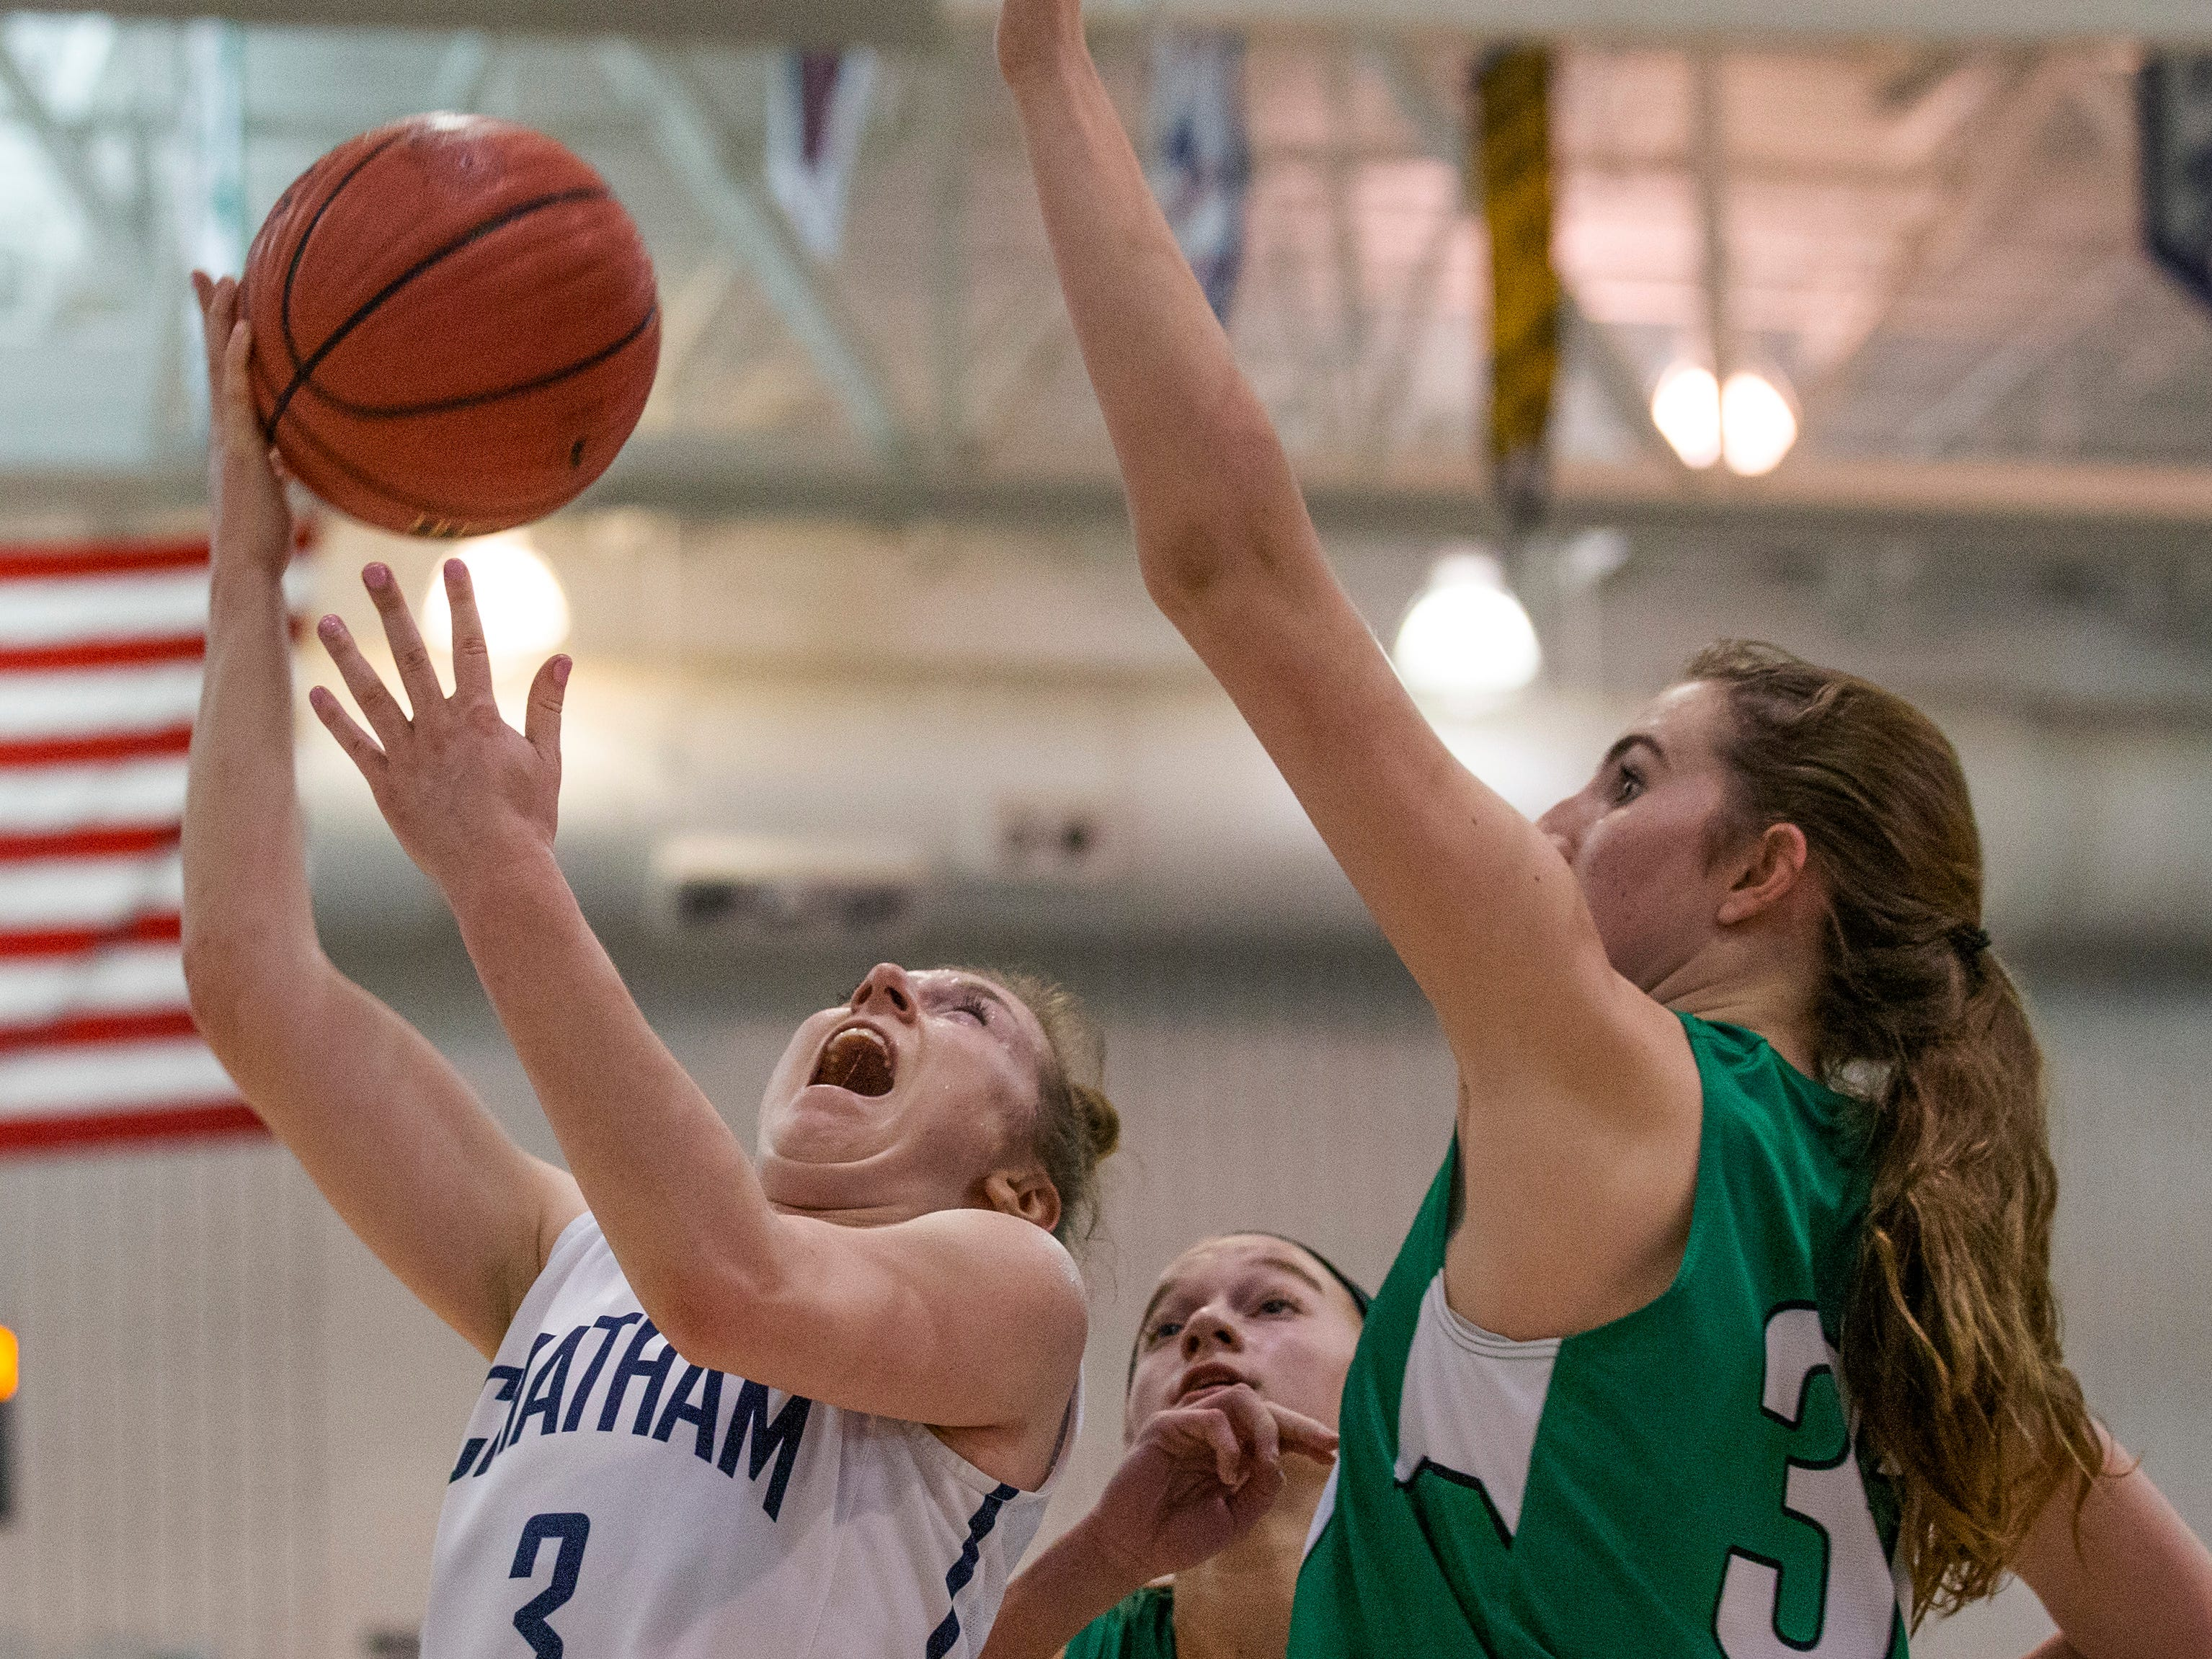 Michaela Ford puts up a shot as Mainland's Kaitlyn Boggs tries to block her. Chatham Girls Basketball vs Mainland in Girls Group III Final in Toms River on March 10, 2019.